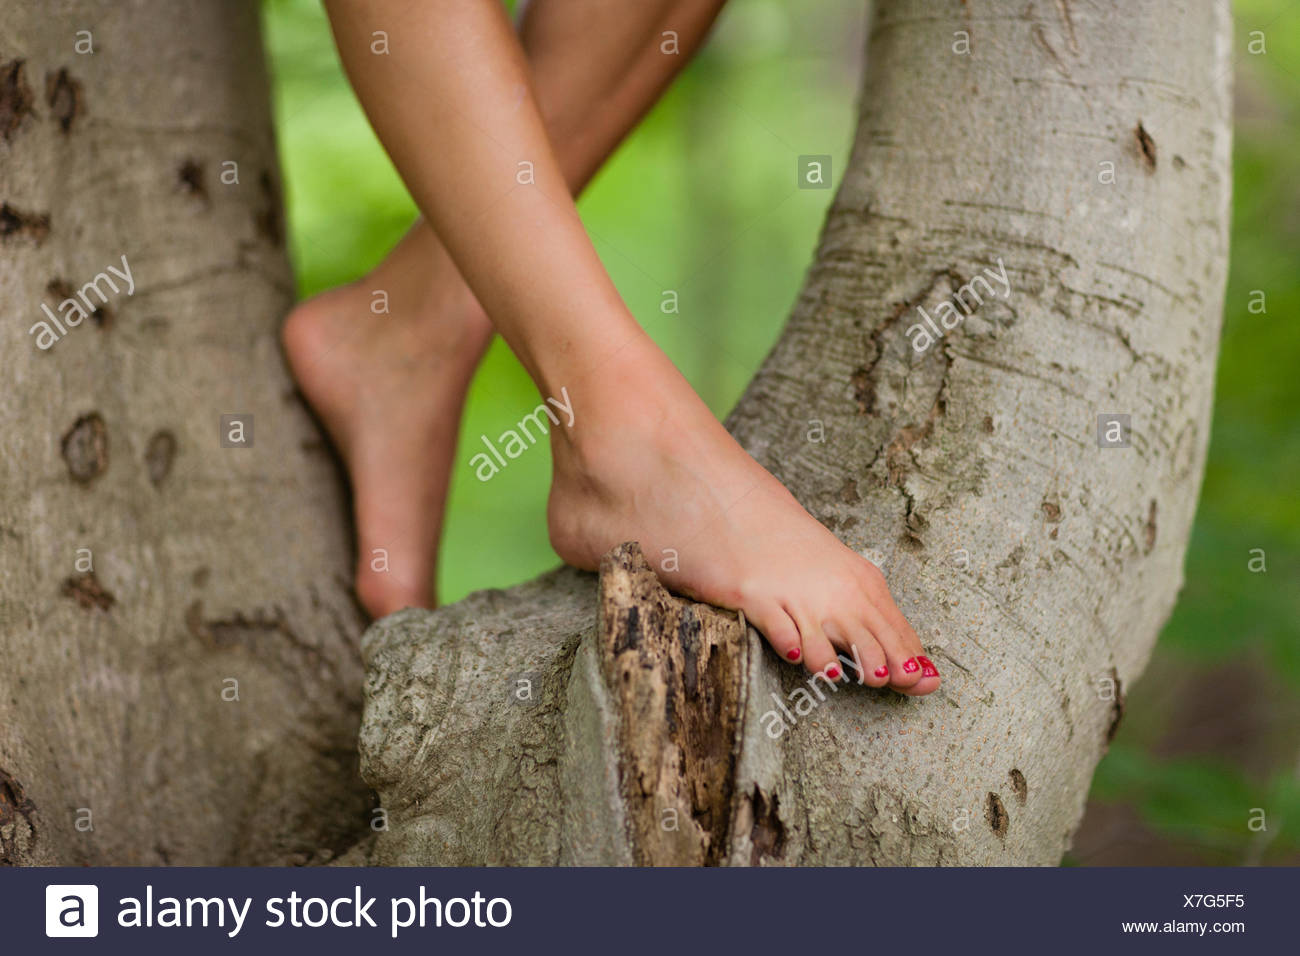 Bare legs and feet of young woman standing in tree - Stock Image